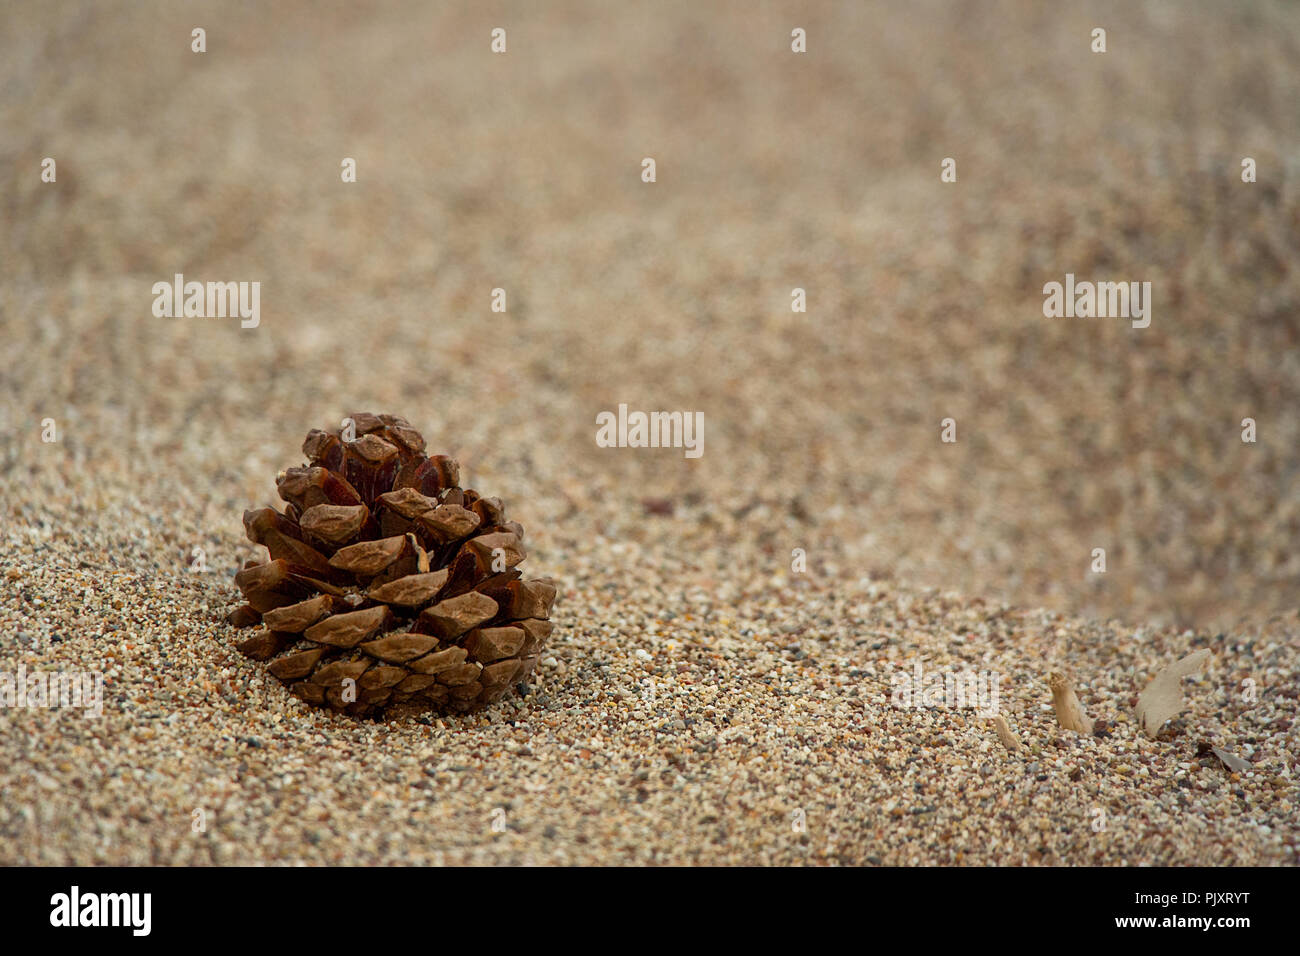 A close up of a single lone Spruce pine cone on a wind blown sandy beach. - Stock Image